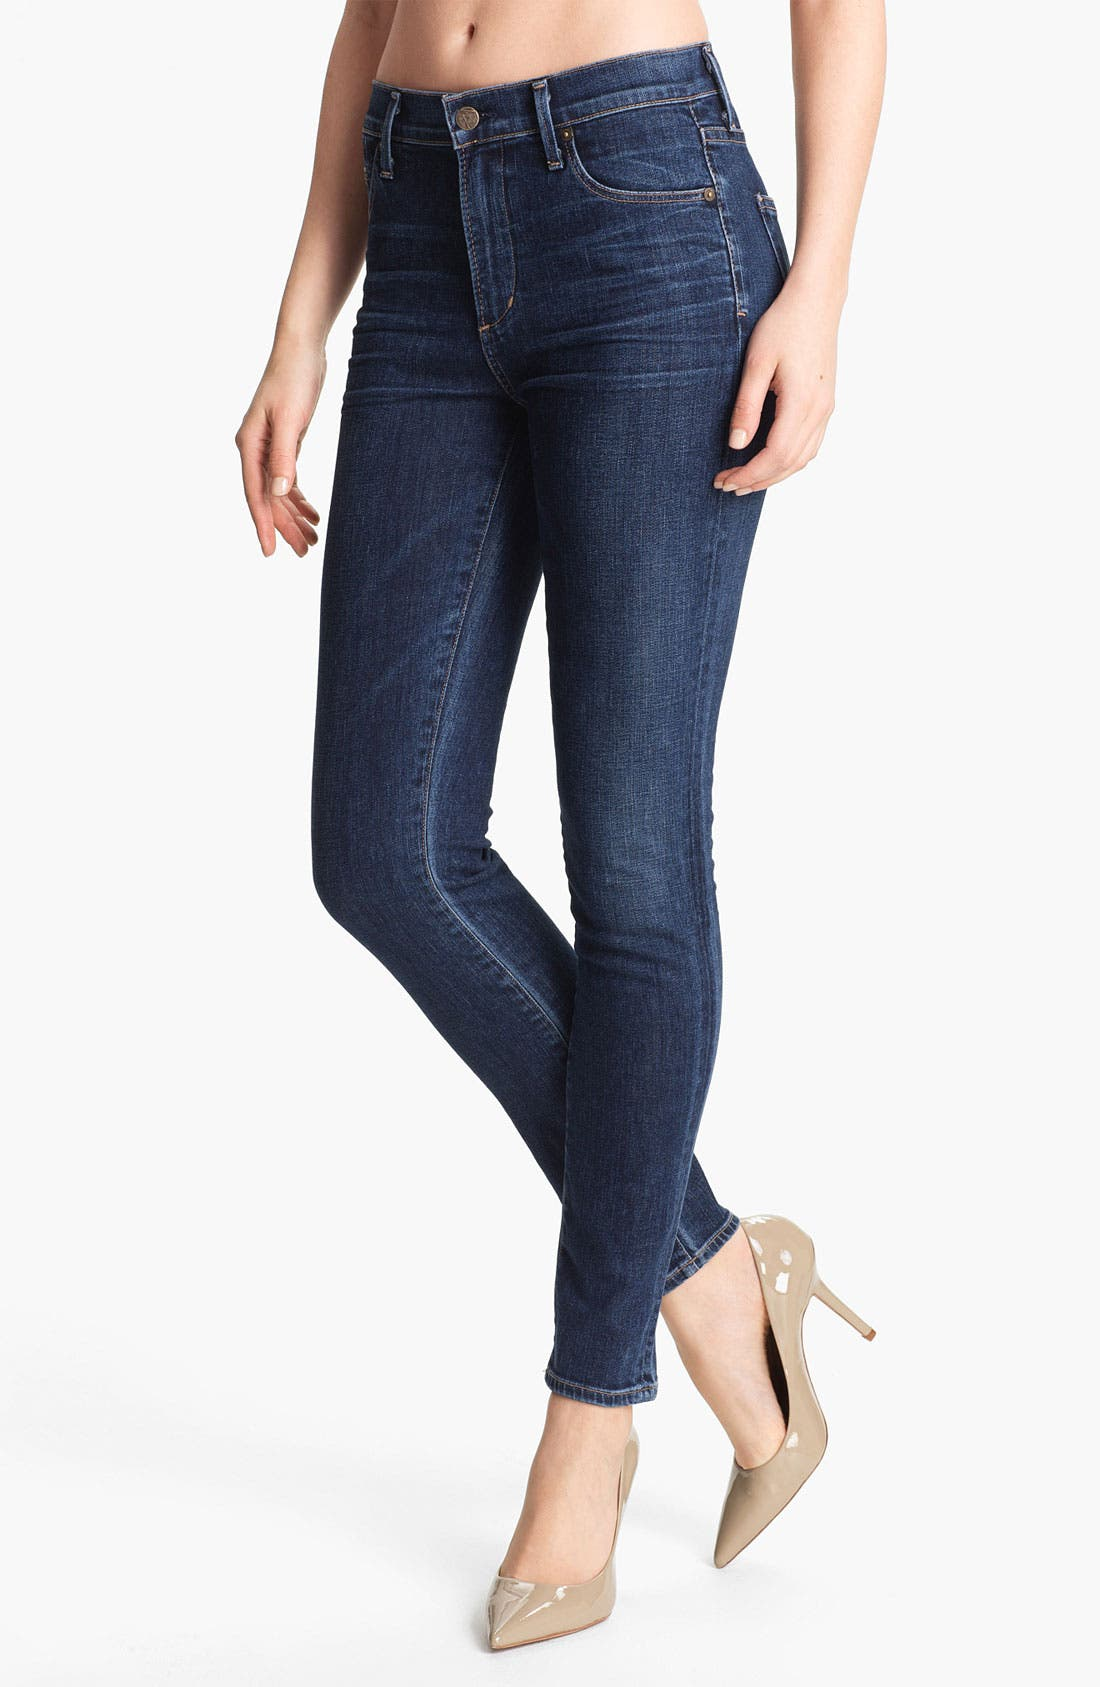 Alternate Image 1 Selected - Citizens of Humanity 'Rocket' High Rise Skinny Jeans (Crispy)